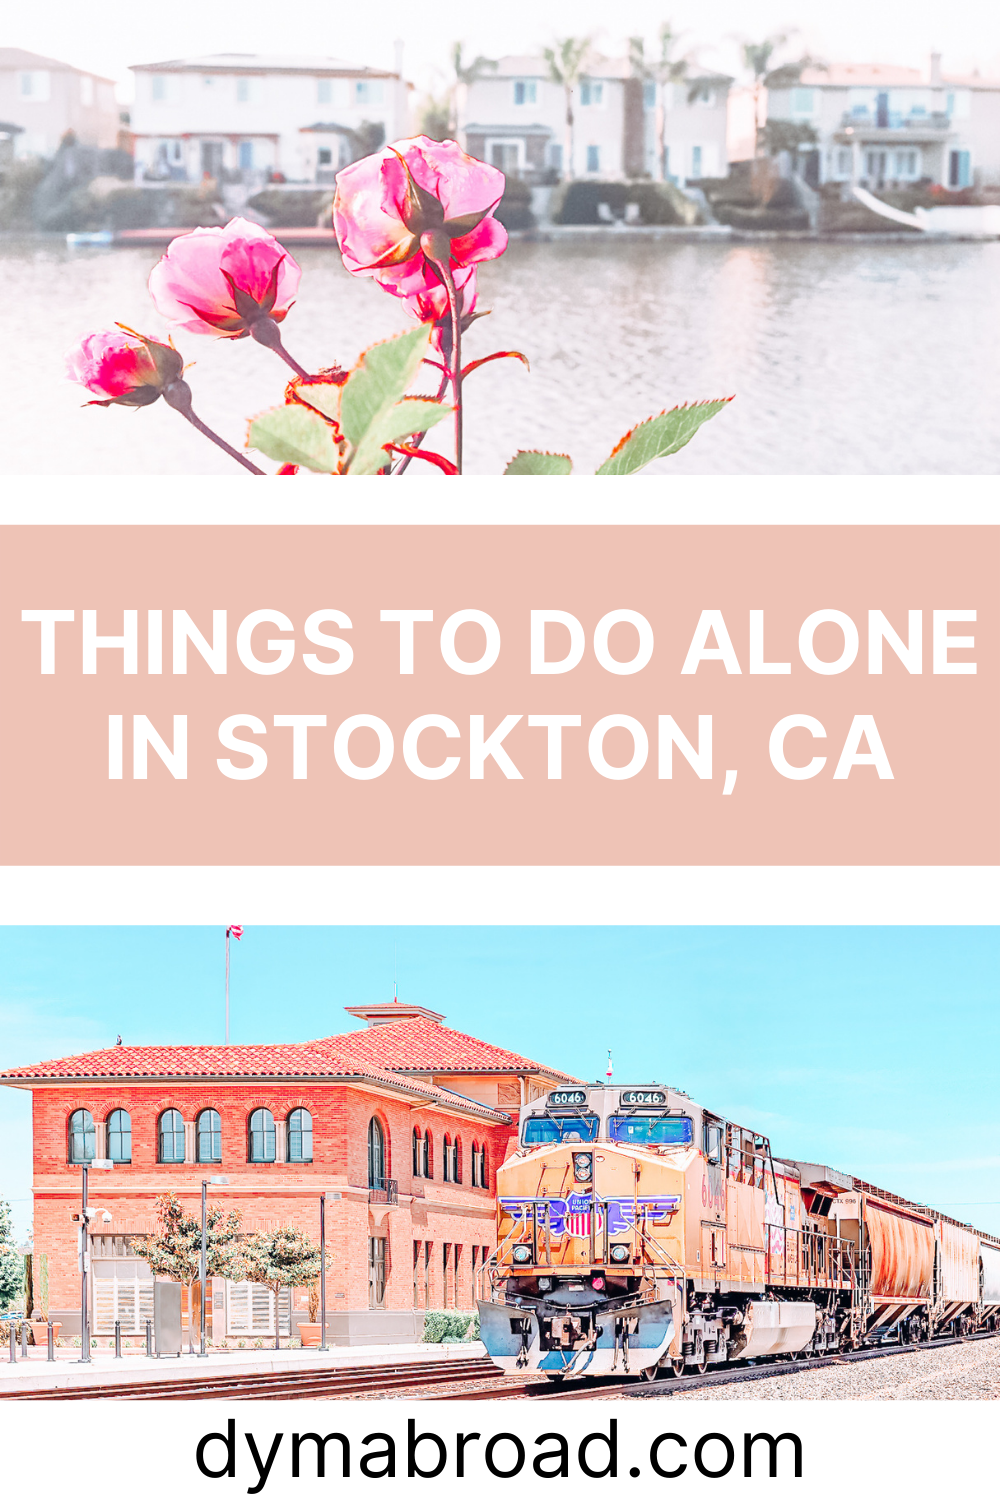 Things to do alone in Stockton second Pinterest image